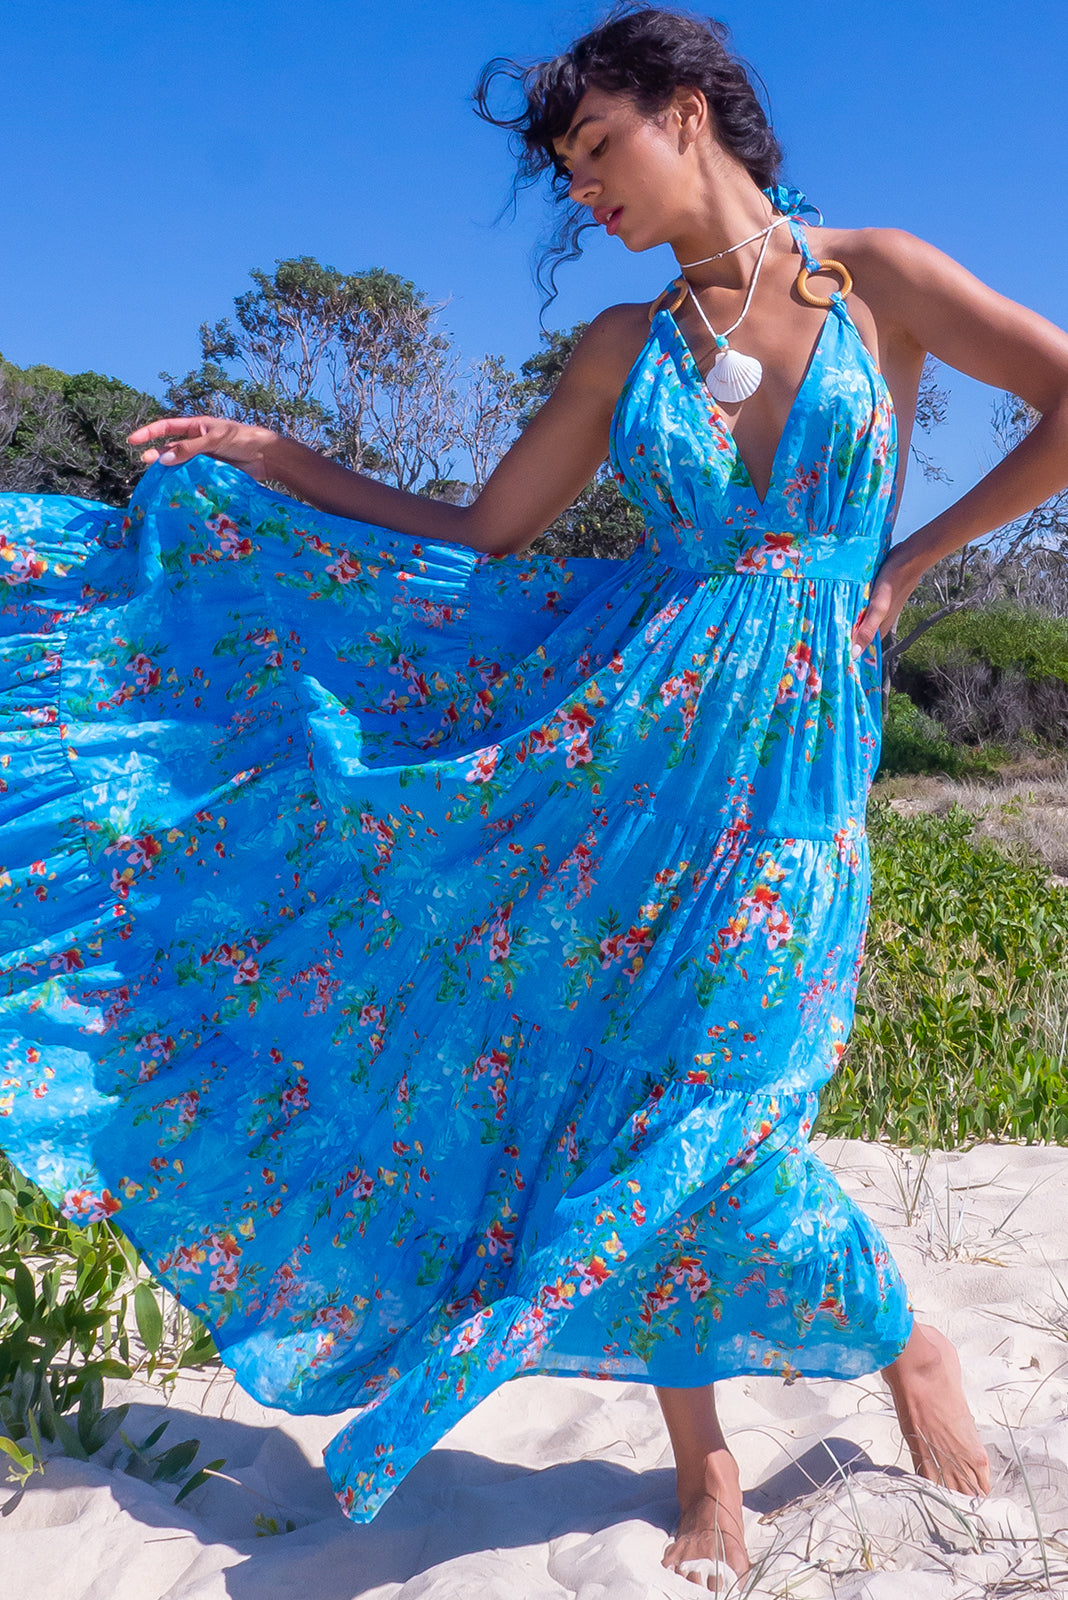 The Charlie Sea Glass Blue Maxi Dress is a perfect beach dress featuring halter neck with tie up straps and ring feature, elasticated back waistband, tiered skirt, side pockets and 100% cotton in vibrant blue base with wash effect & dappled print.